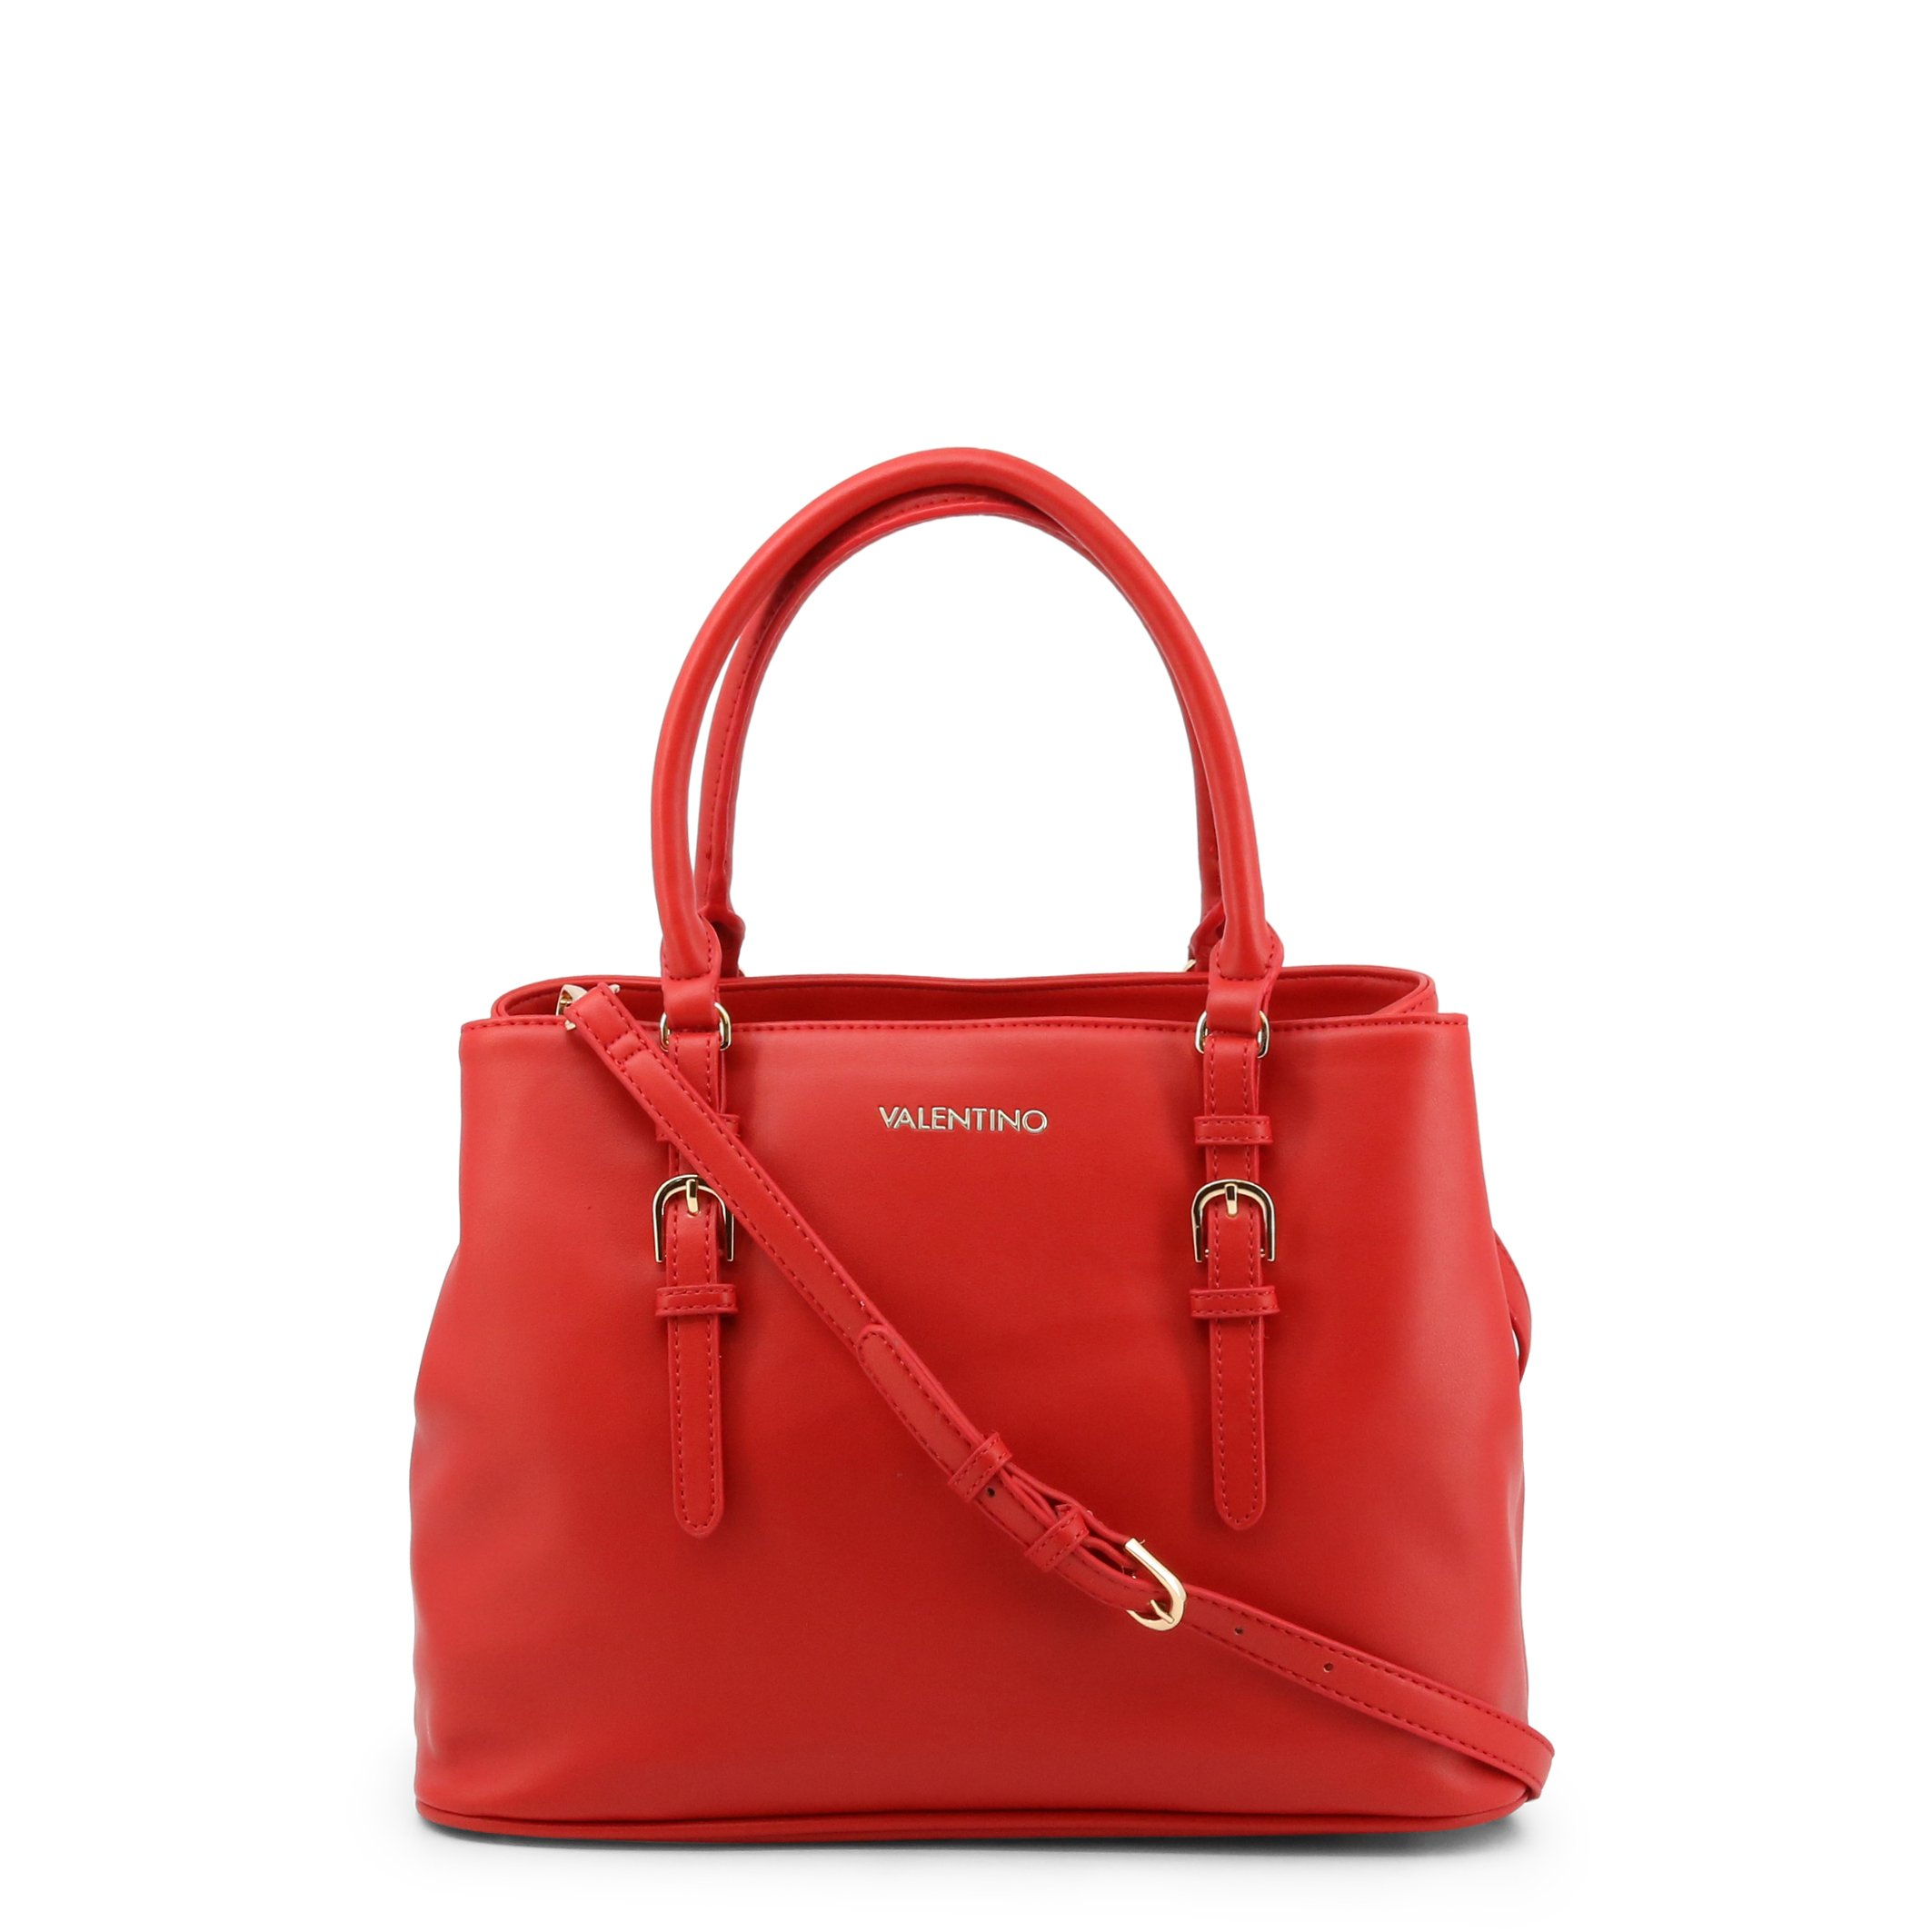 Valentino by Mario Valentino Women's Shoulder Bag Various Colours MEDUSA-VBS52O01 - red NOSIZE